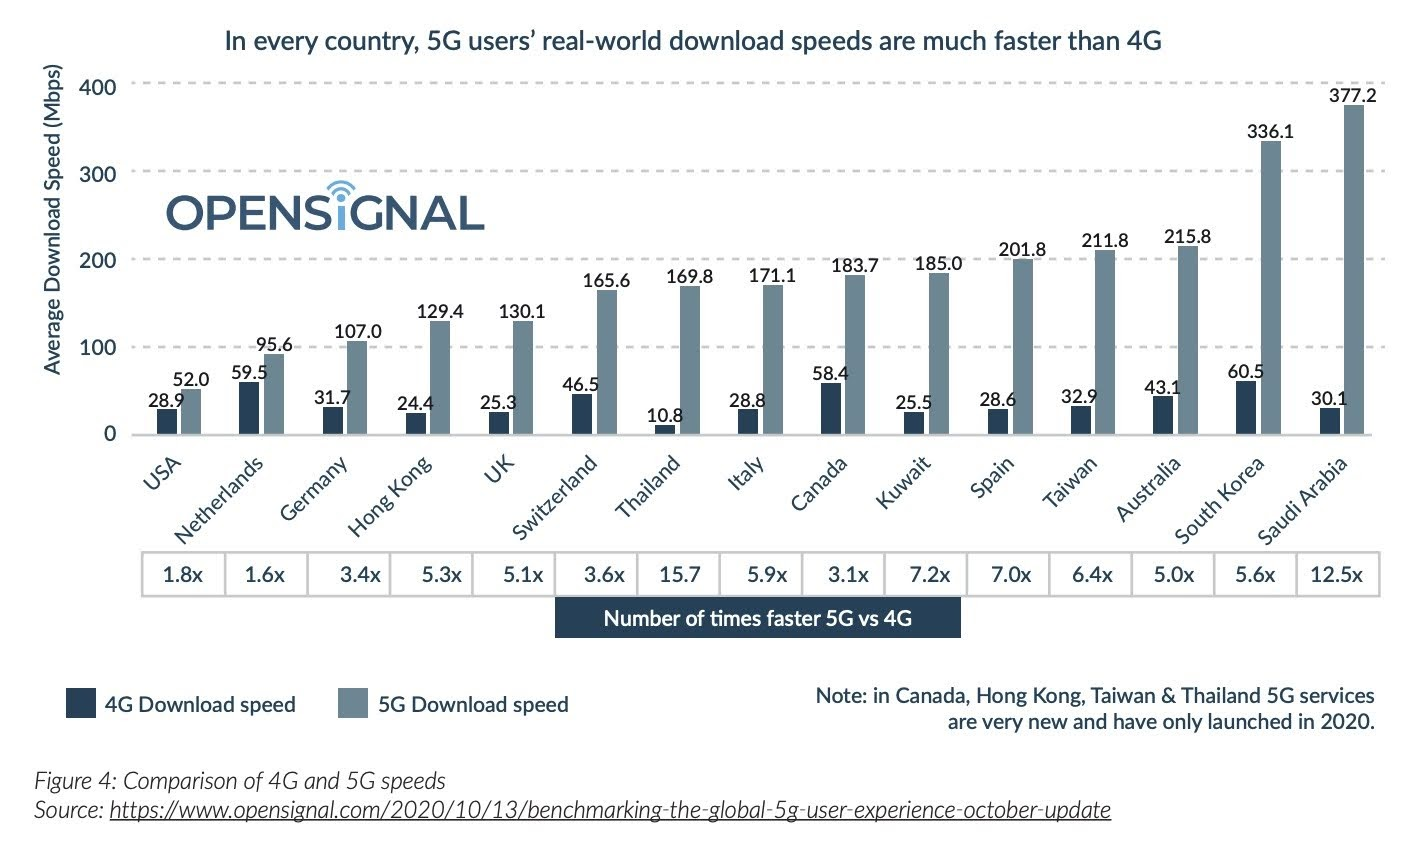 Figure 4: Comparison of 4G and 5G speeds